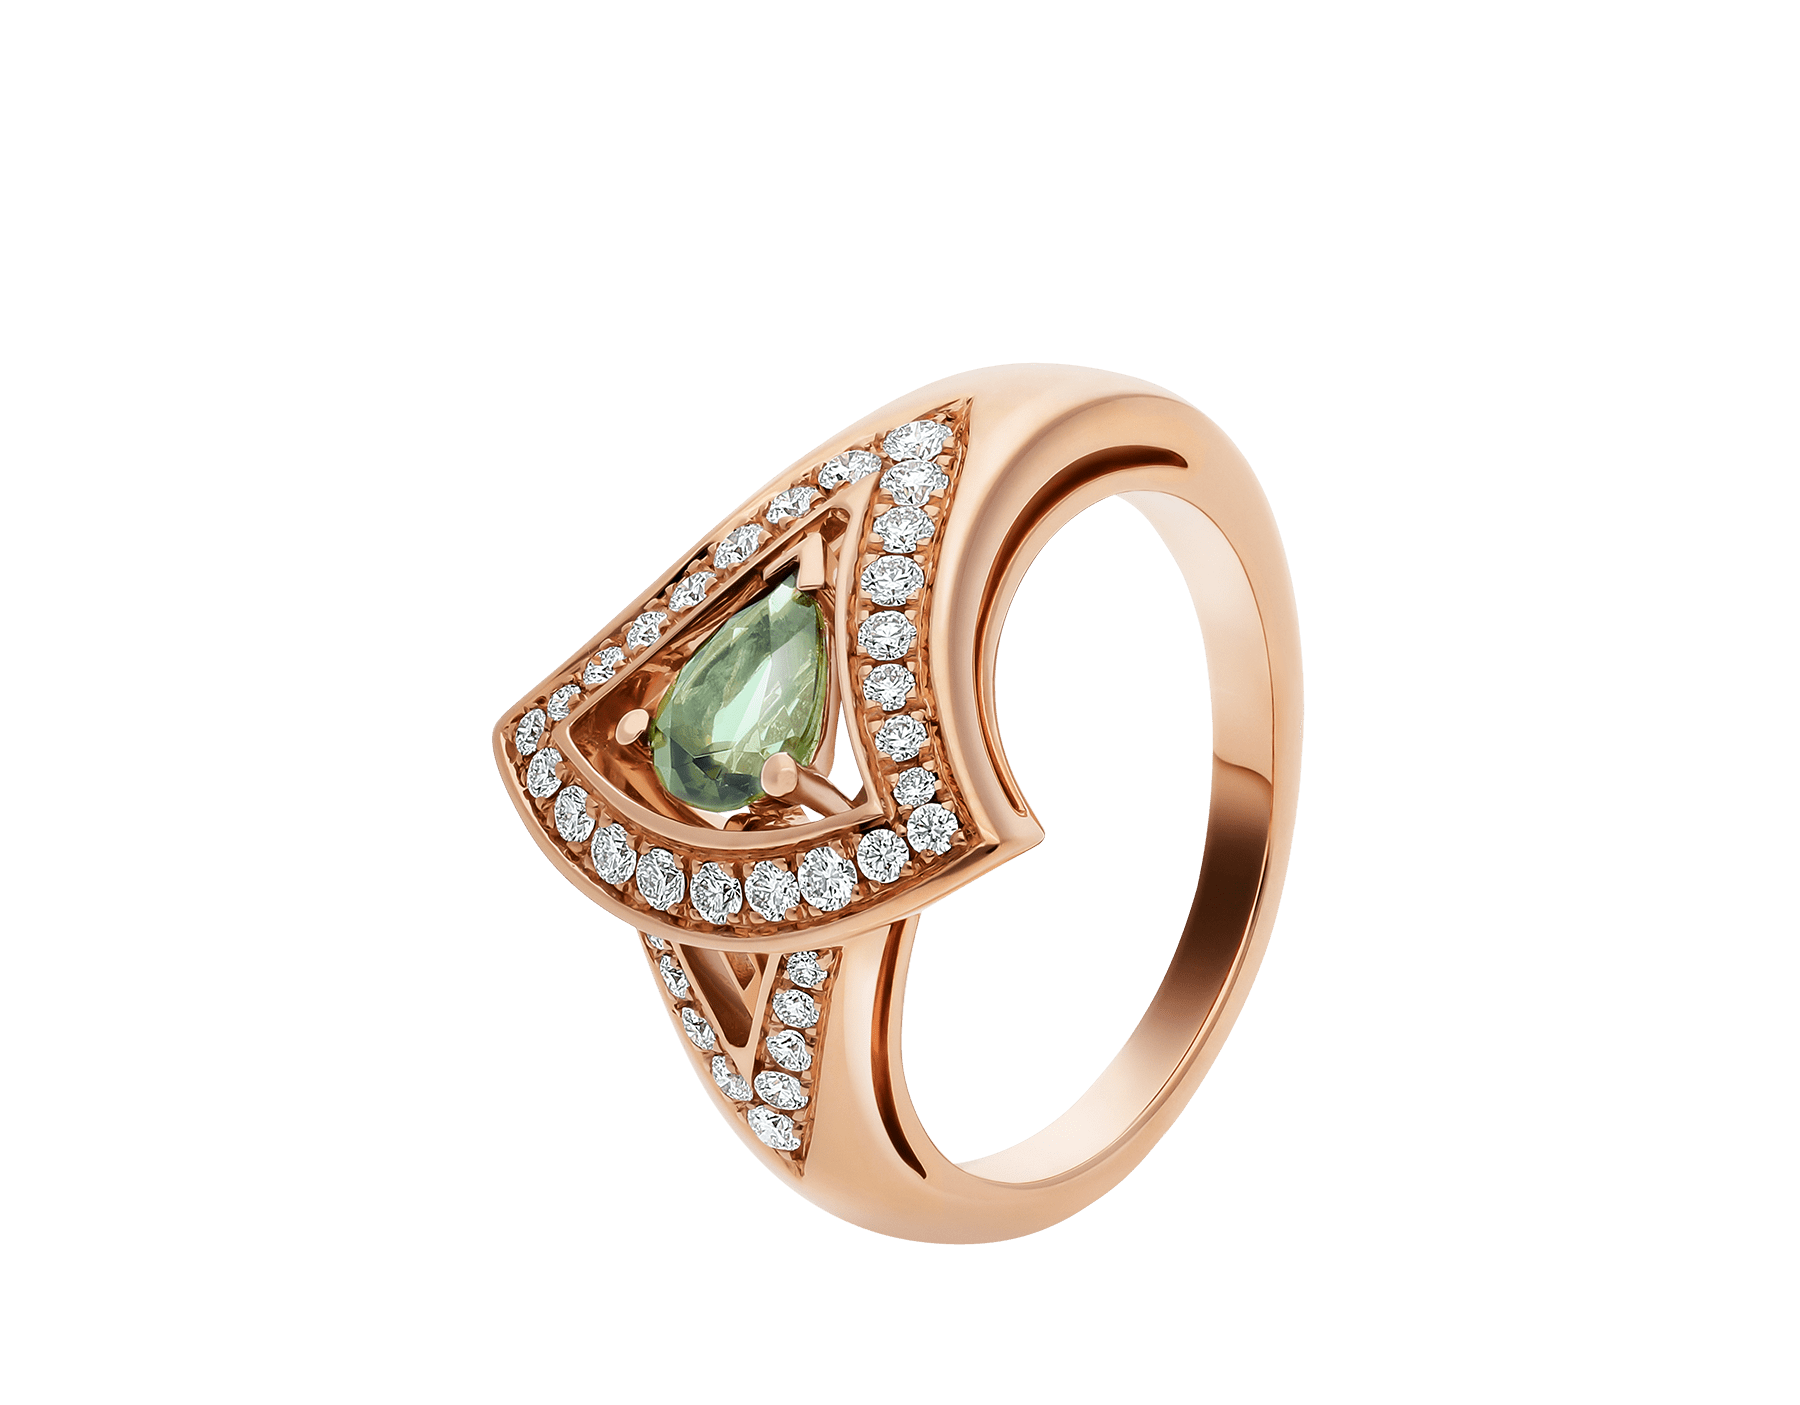 DIVAS' DREAM 18 kt rose gold ring set with a green tourmaline and pavé diamonds AN858508 image 1